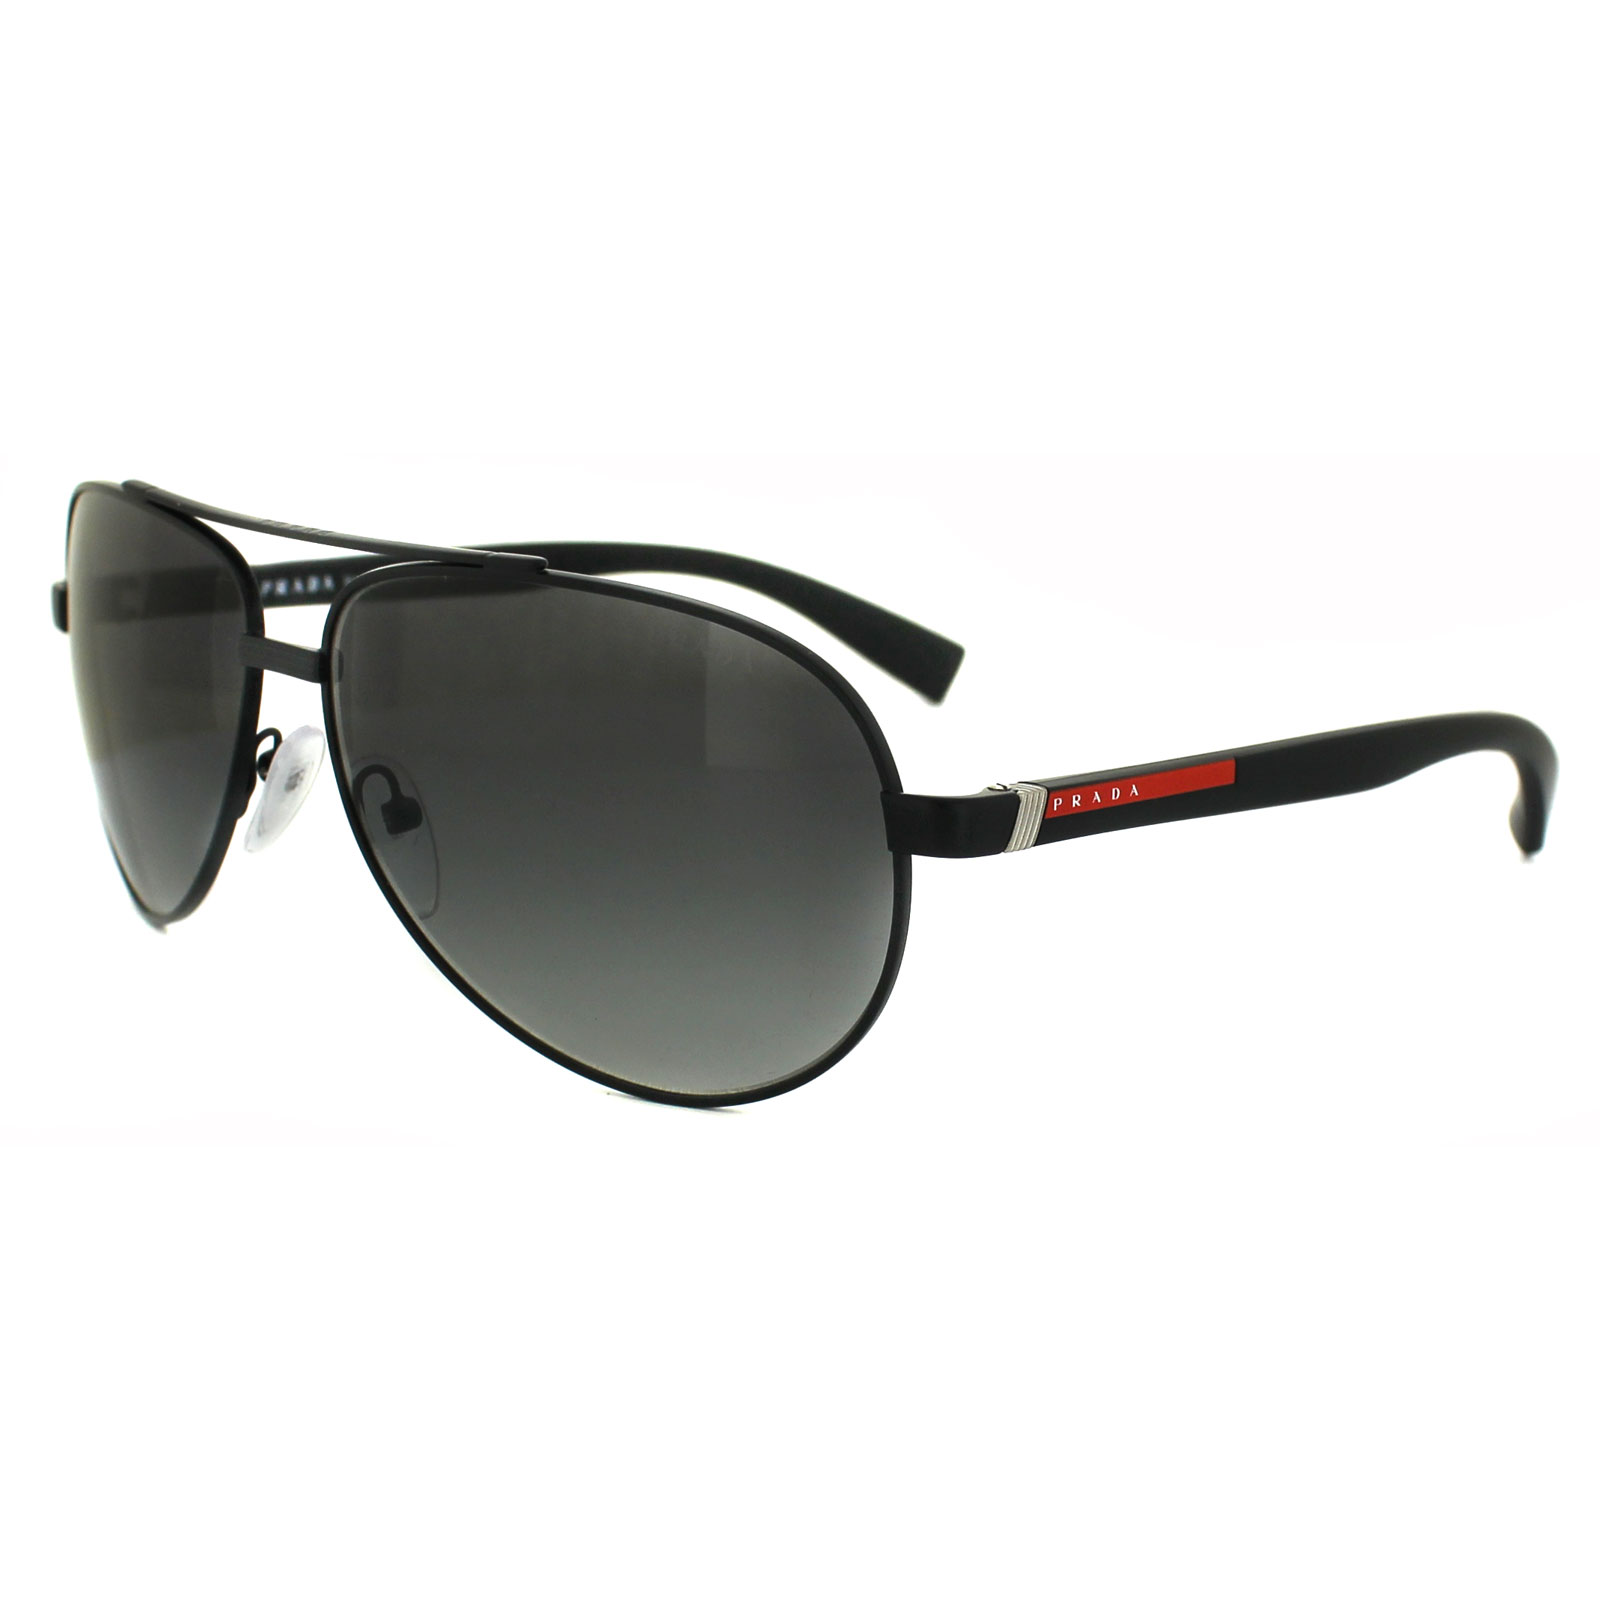 de55f3242751 Prada Sport 51ns 1b03m1 Black 51ns Aviator Sunglasses